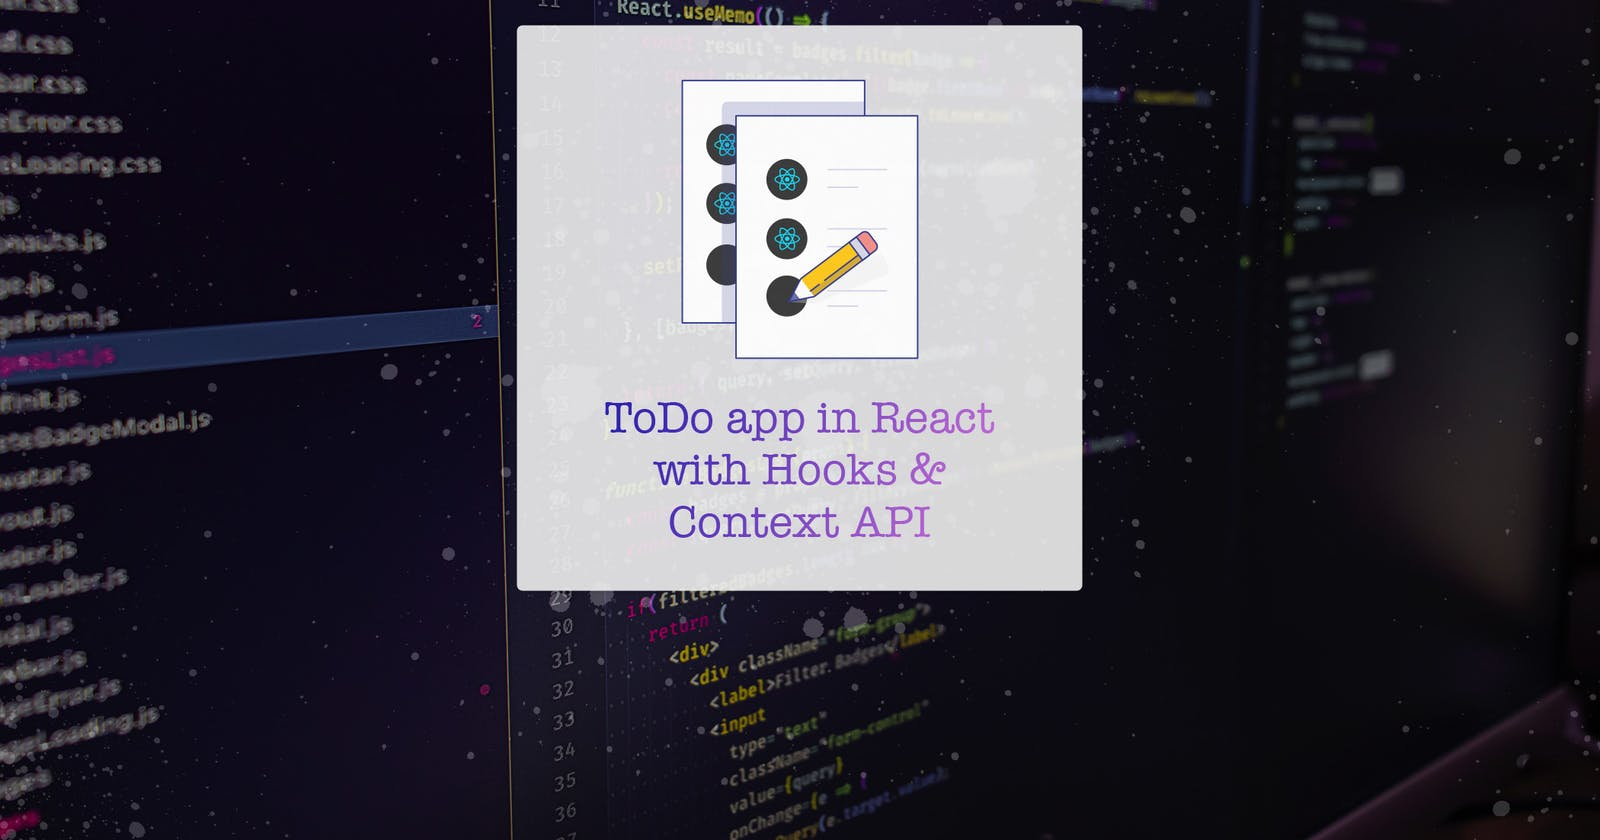 ToDo app in React with Hooks & Context API